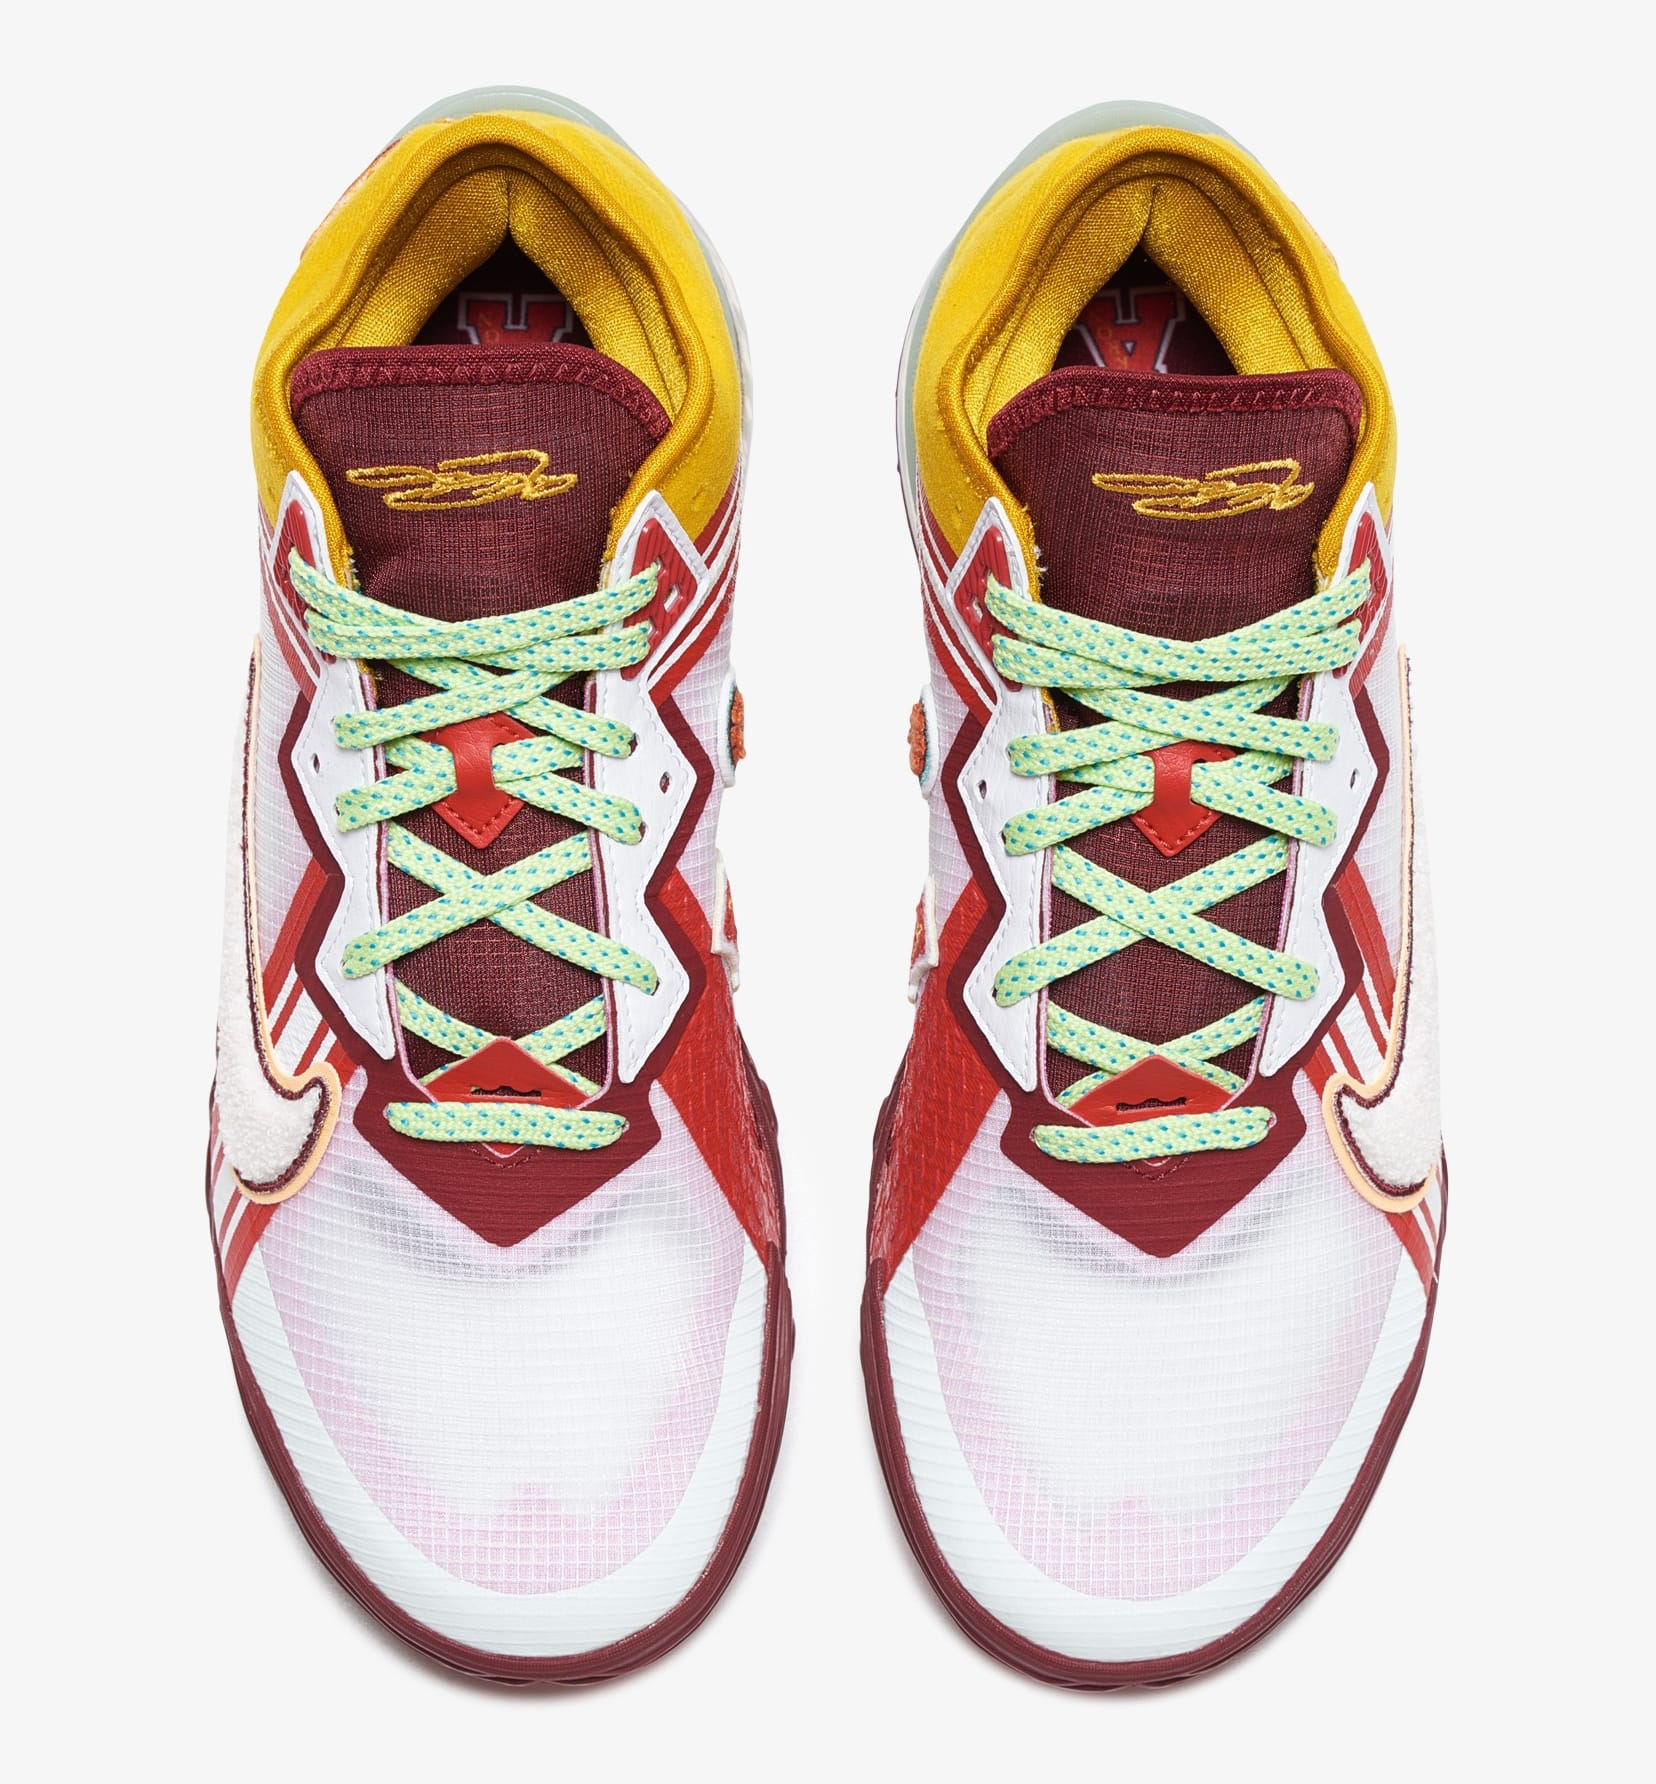 Mimi Plange x Nike LeBron 18 Low 'Higher Learning' CV7562-102 Top